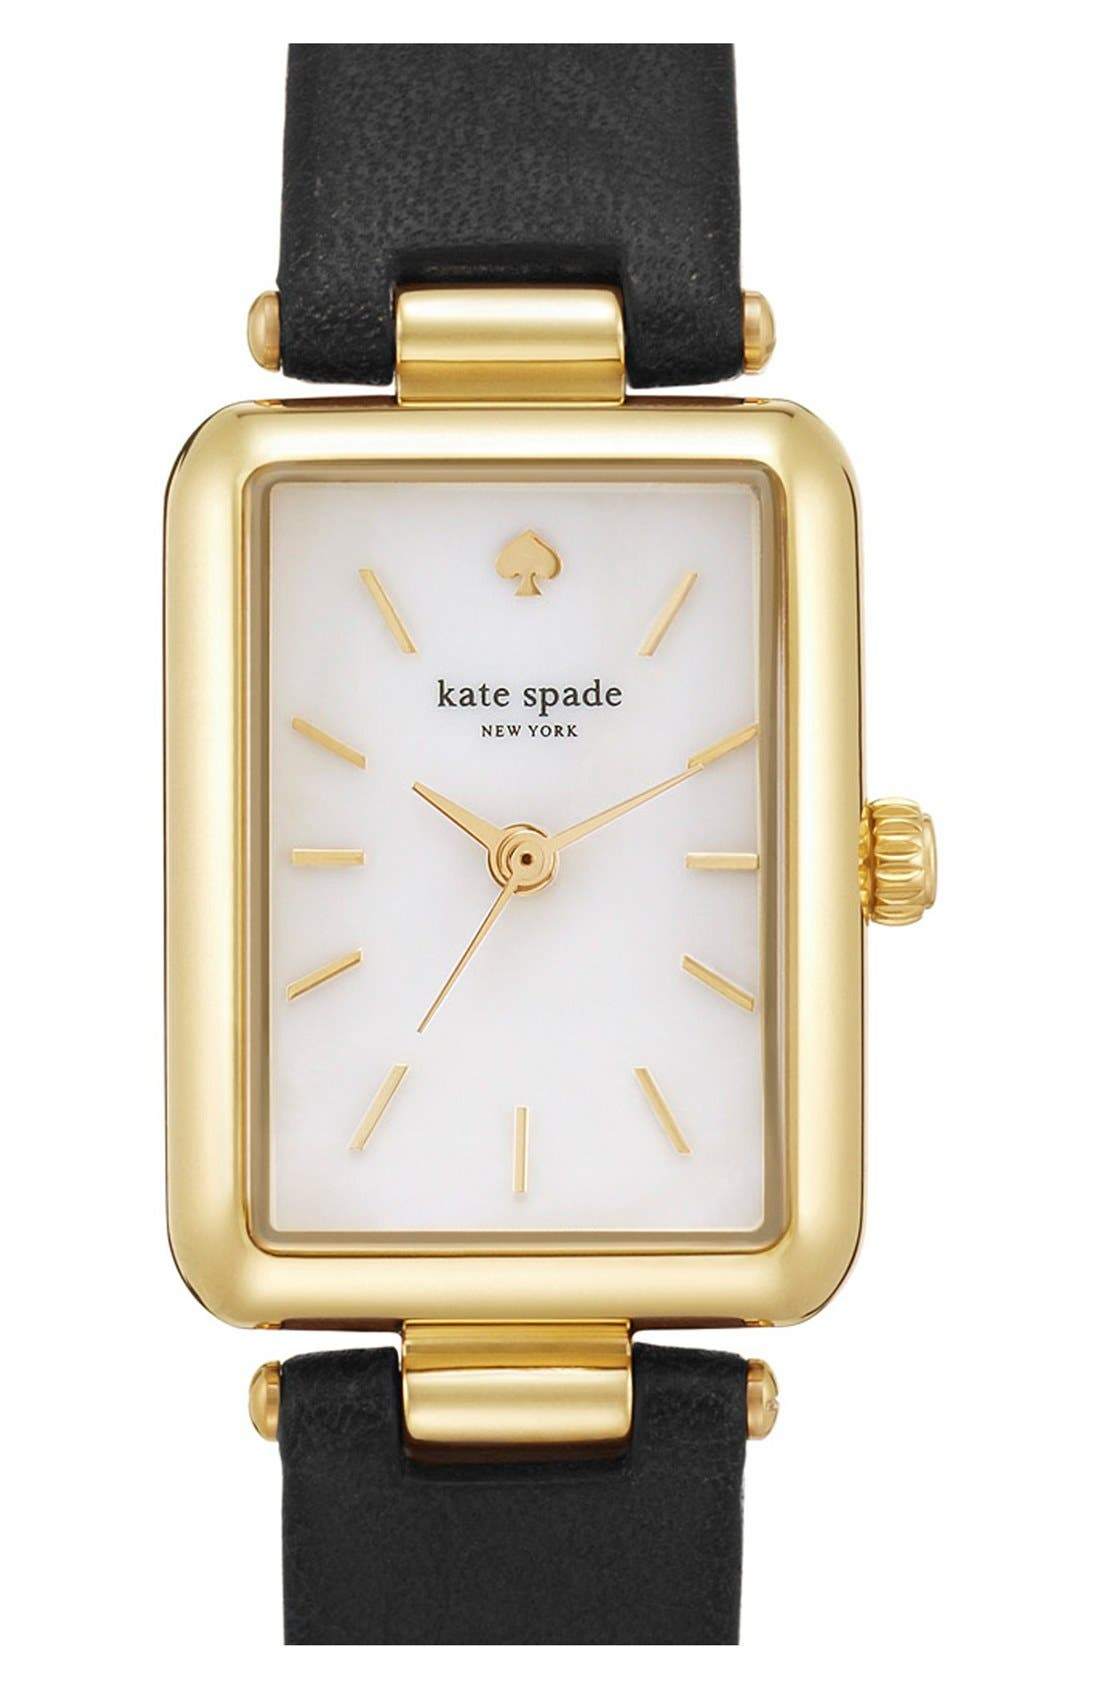 KATE SPADE NEW YORK 'paley' rectangular leather strap watch, 21mm x 28mm, Main, color, 001